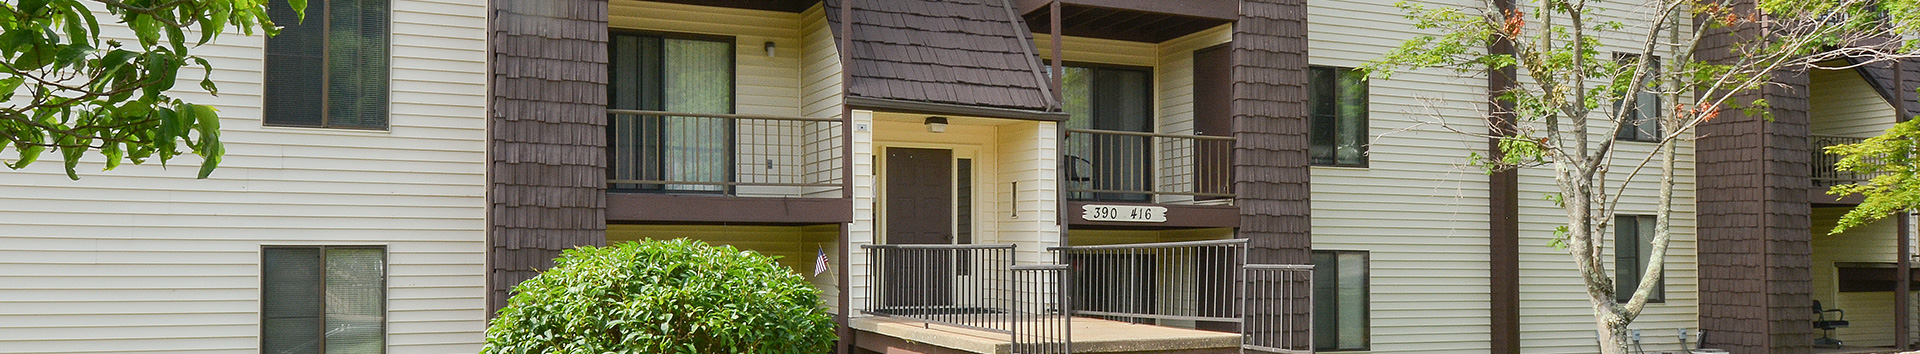 Exterior view of Roxalana Hills Apartments at Manor Communities, Charleston/West Virginia